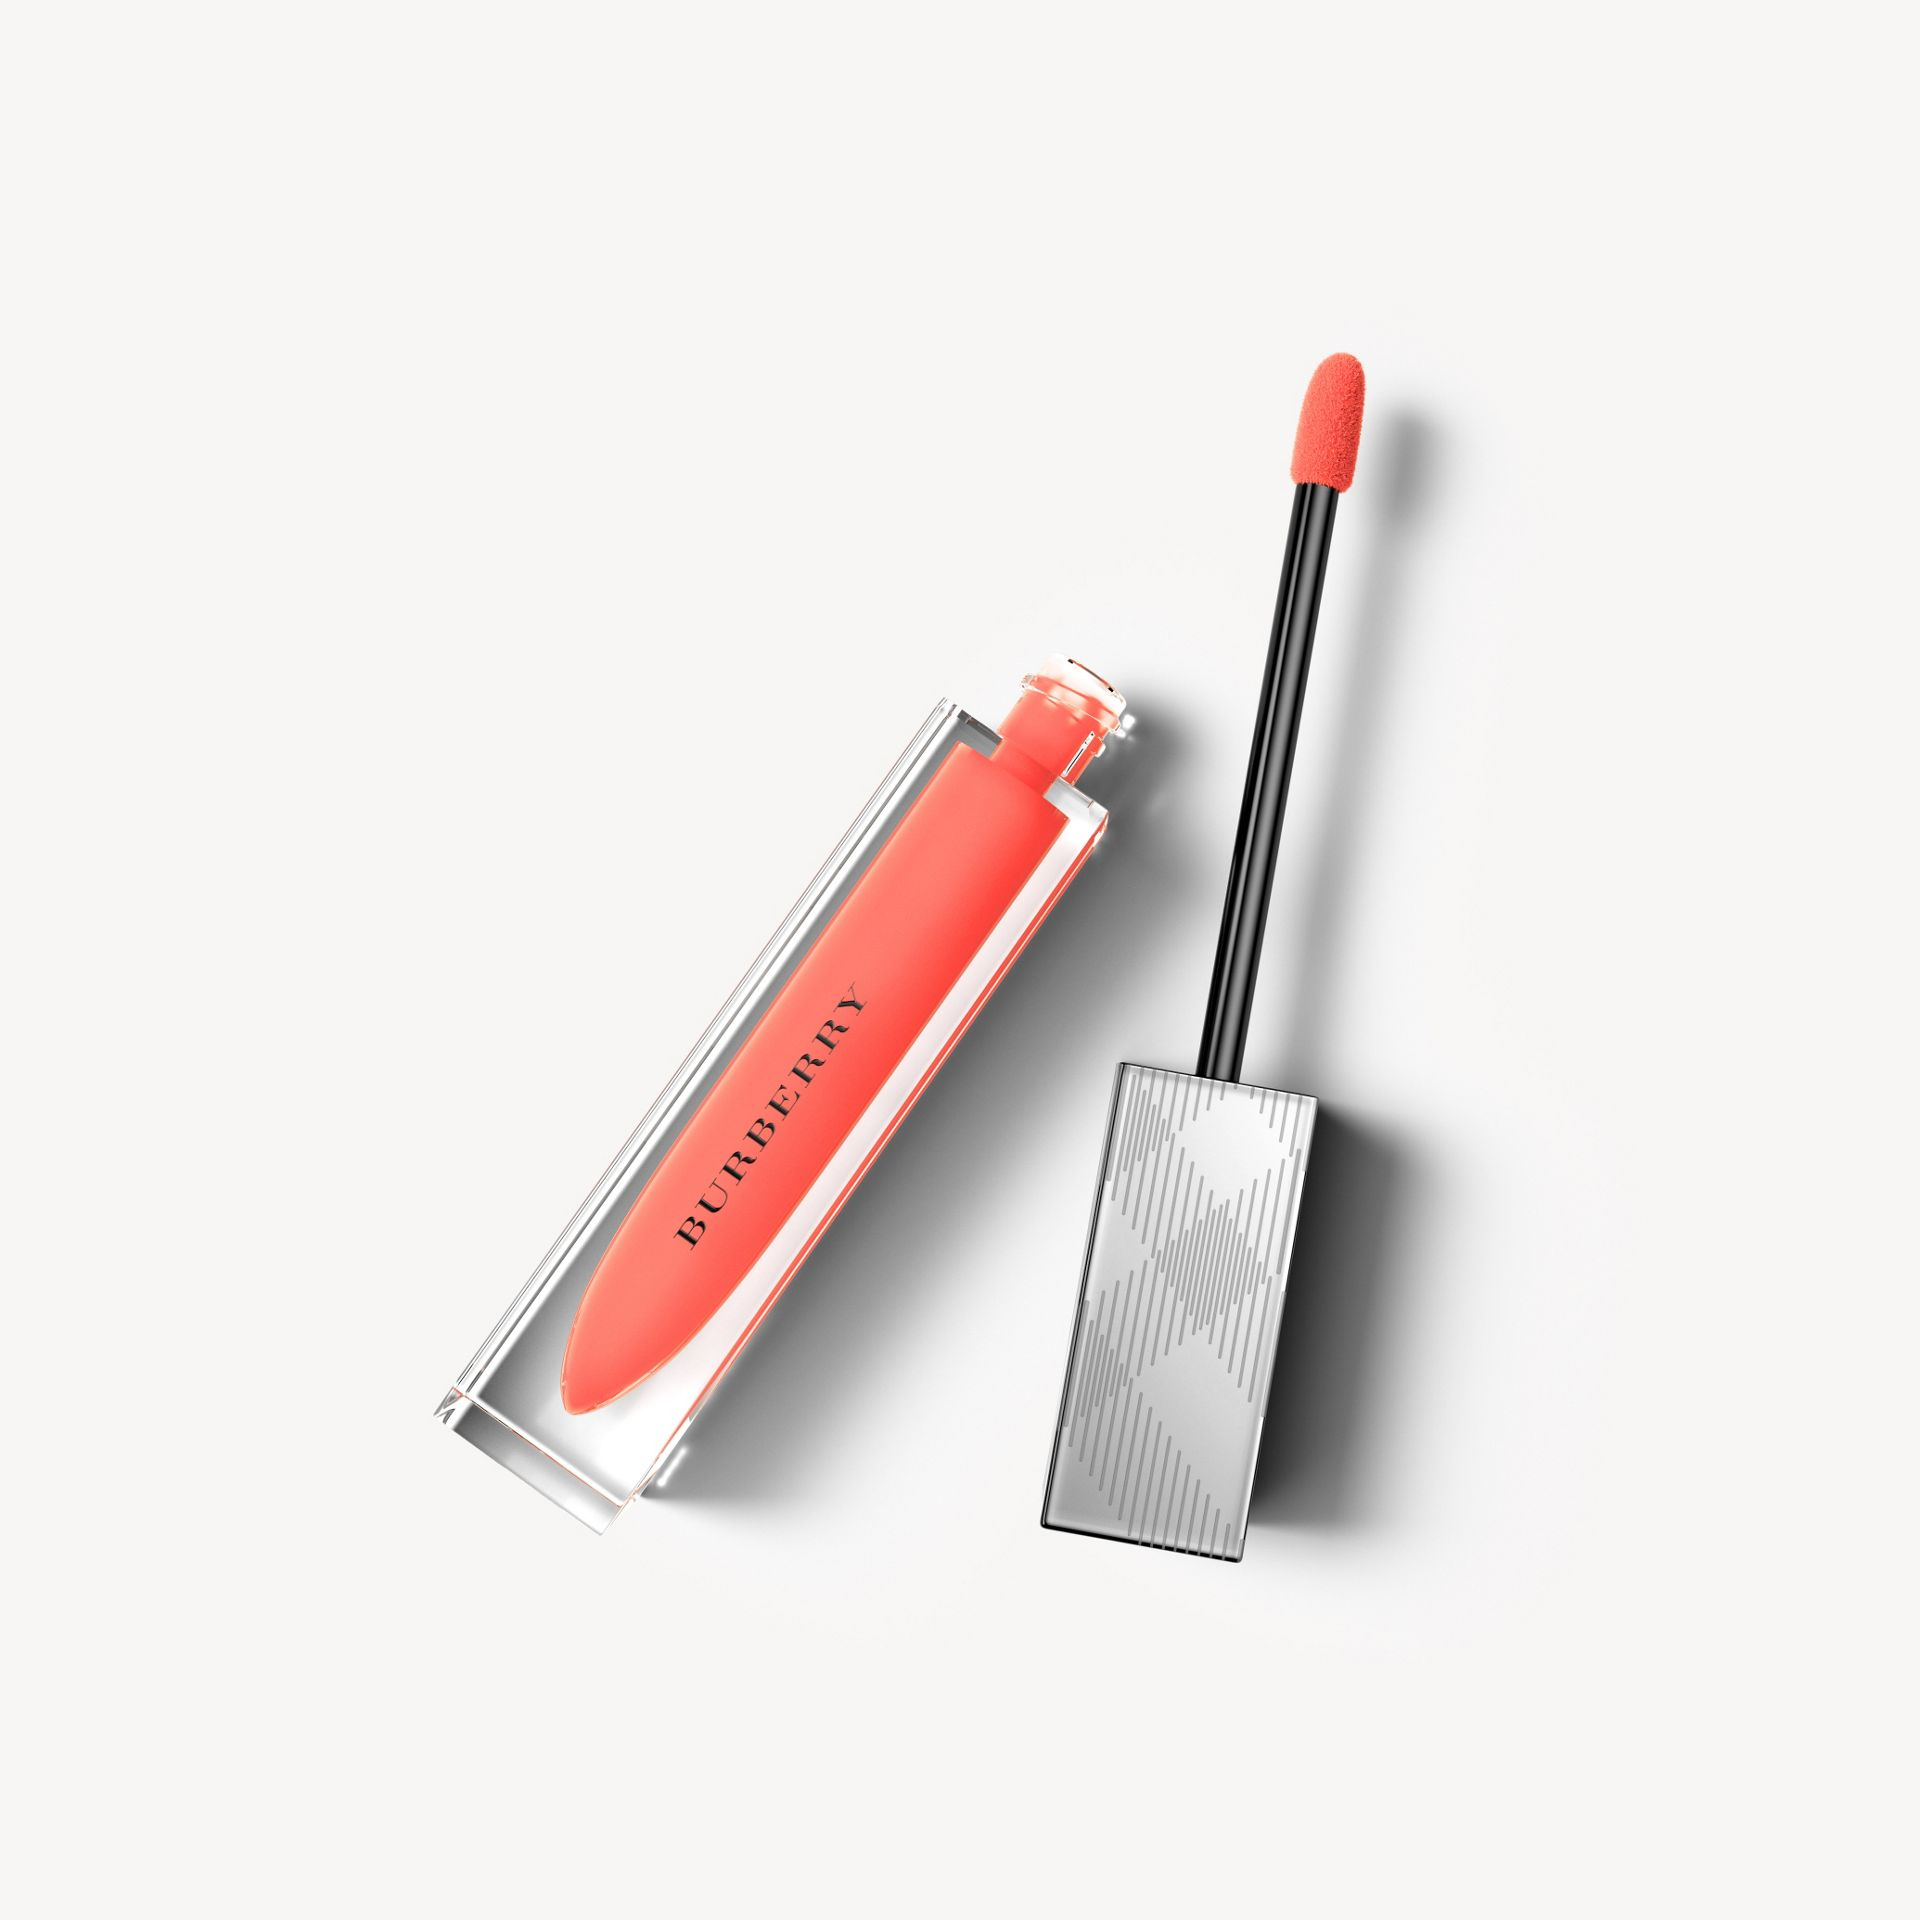 Tangerine no.77 Burberry Kisses Gloss – Tangerine No.77 - Galerie-Bild 1